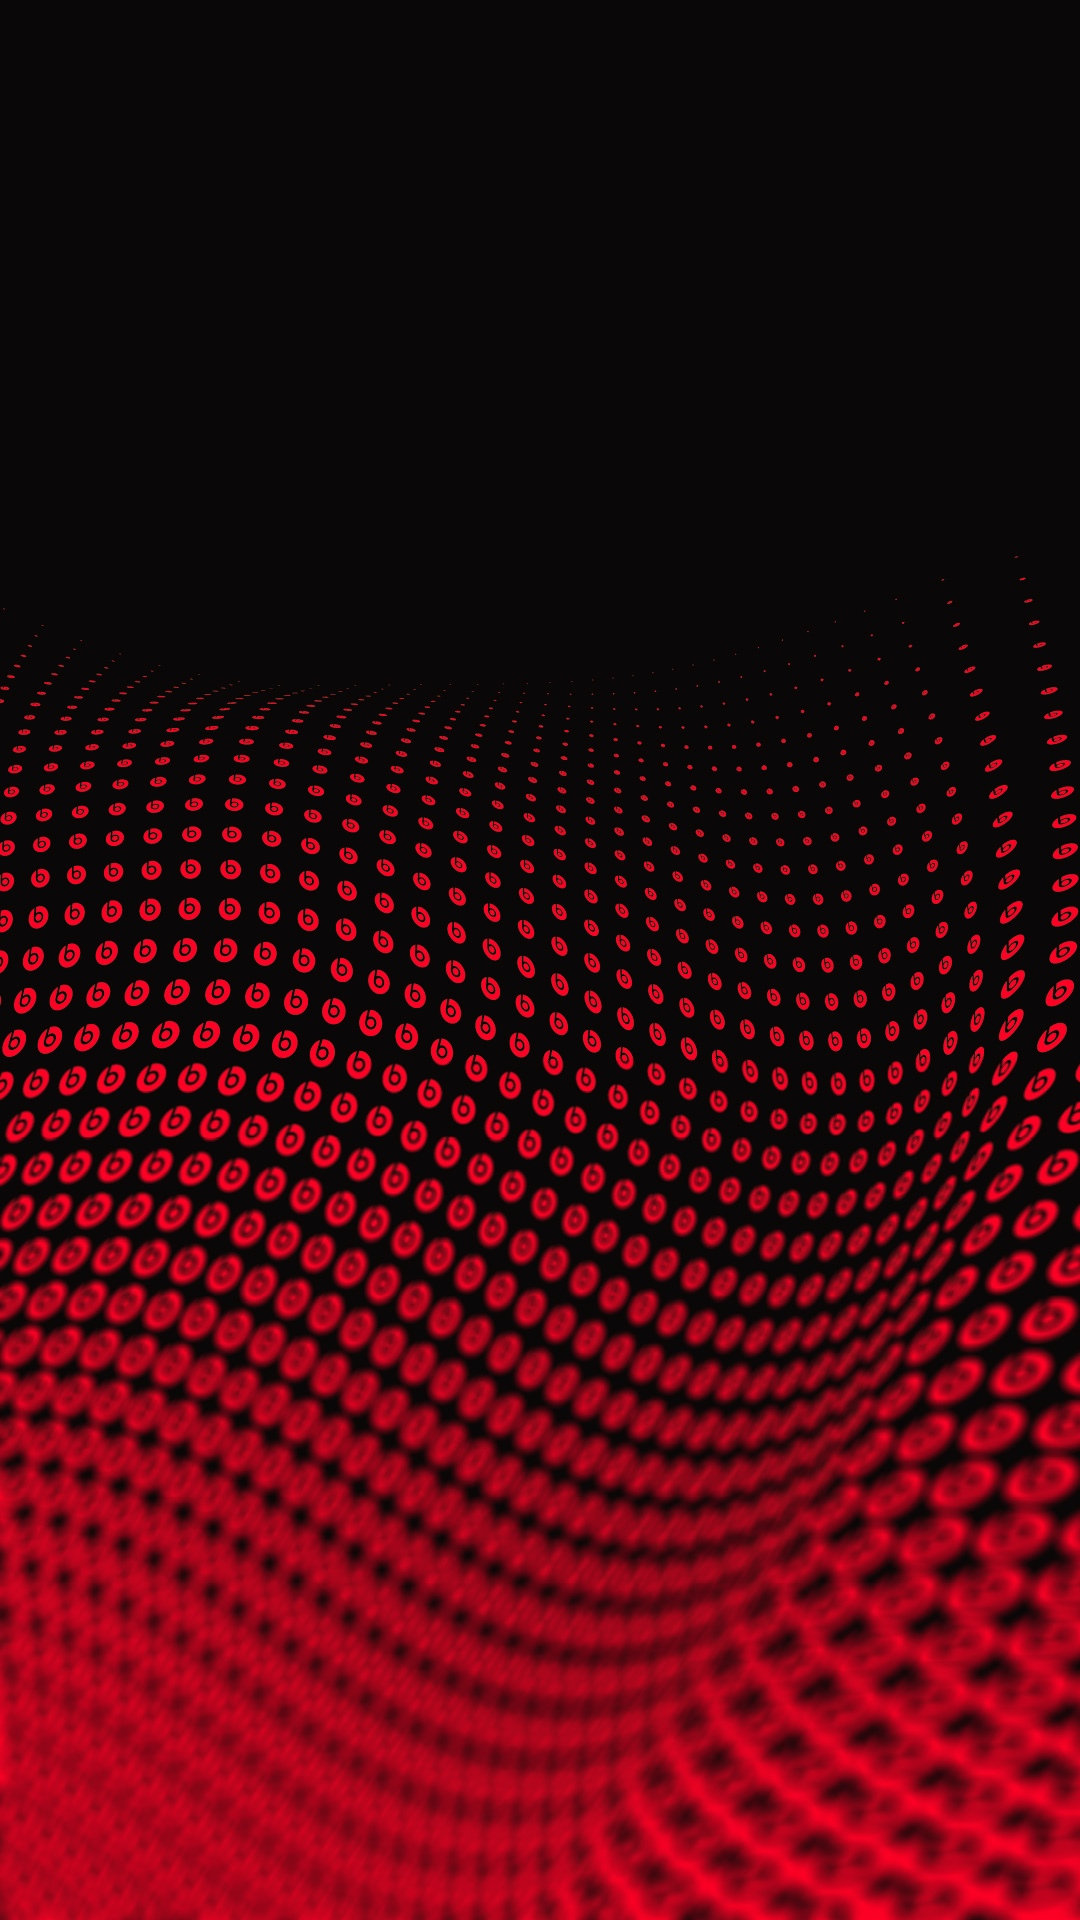 Samsung galaxy s4 active wallpapers abstract red android for Abstract smartphone wallpaper